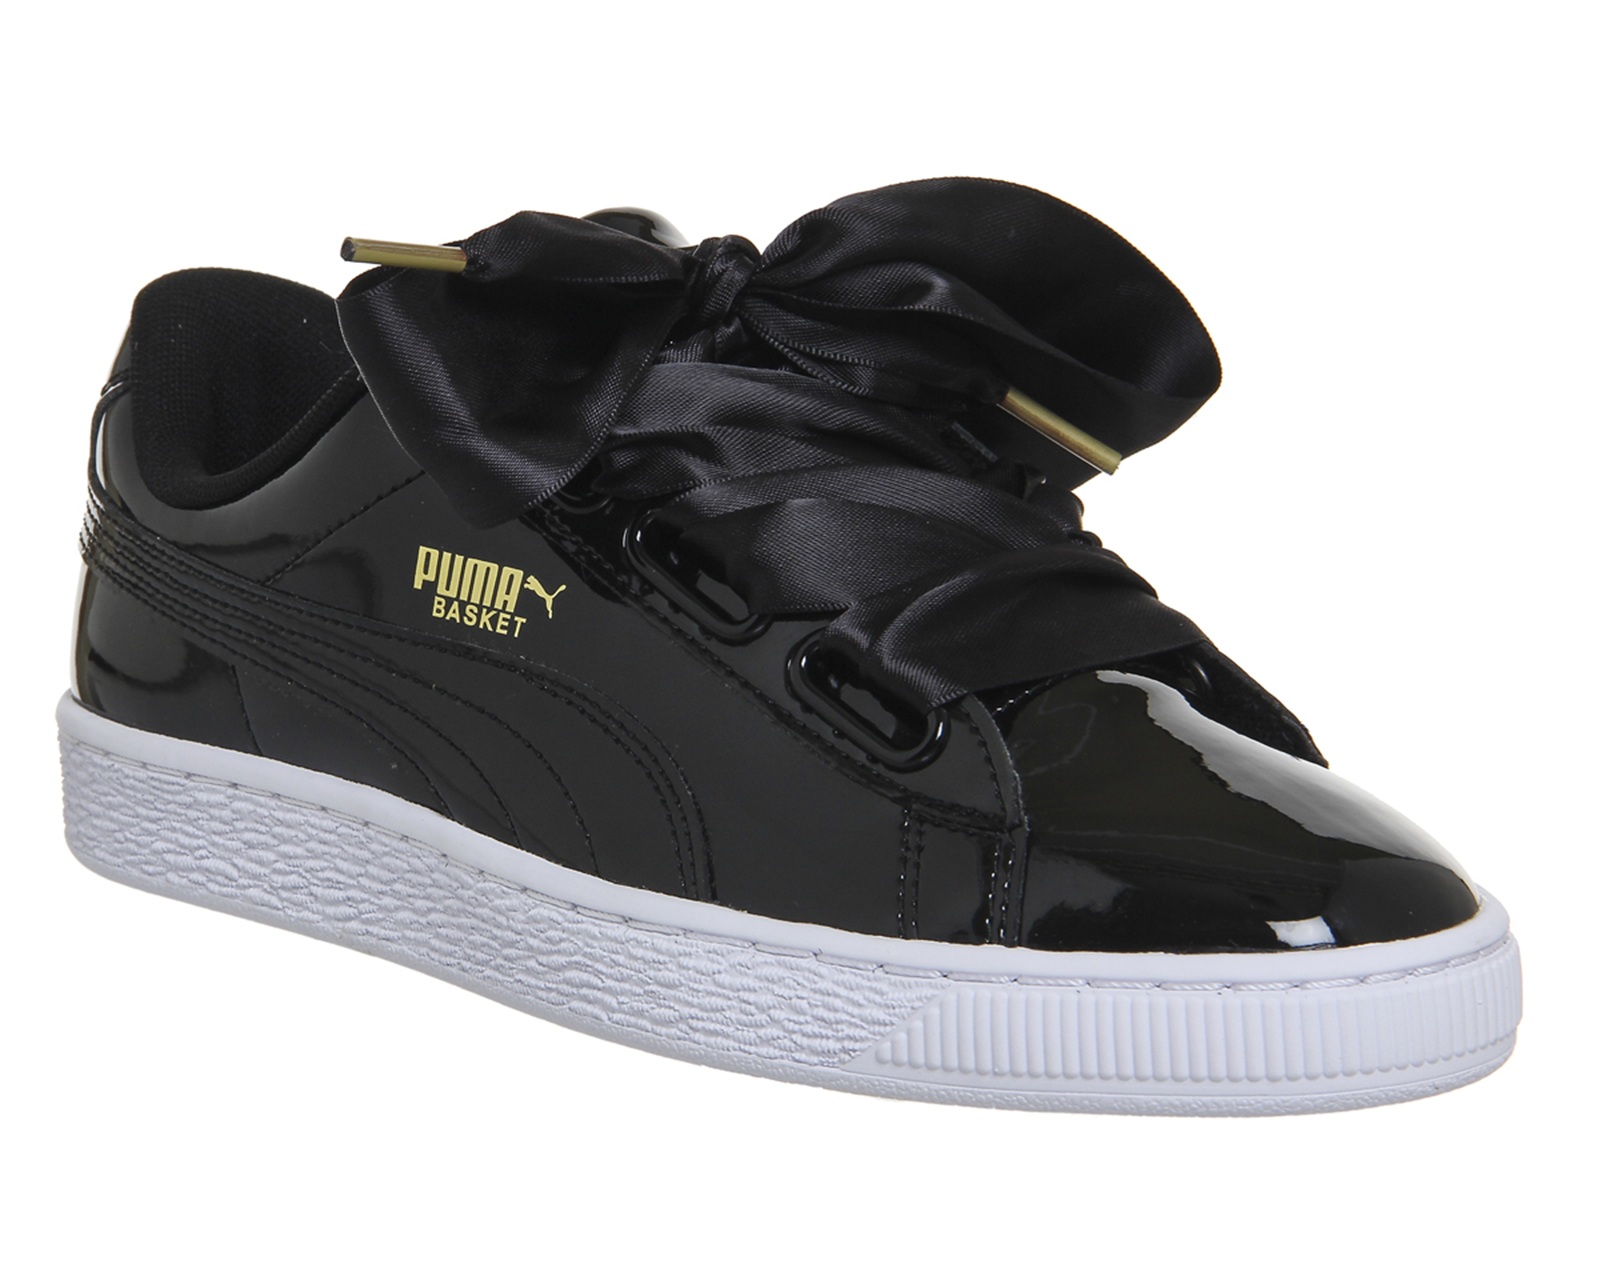 7e3f21db6542 Sentinel Womens Puma Basket Heart Trainers Black Patent Trainers Shoes